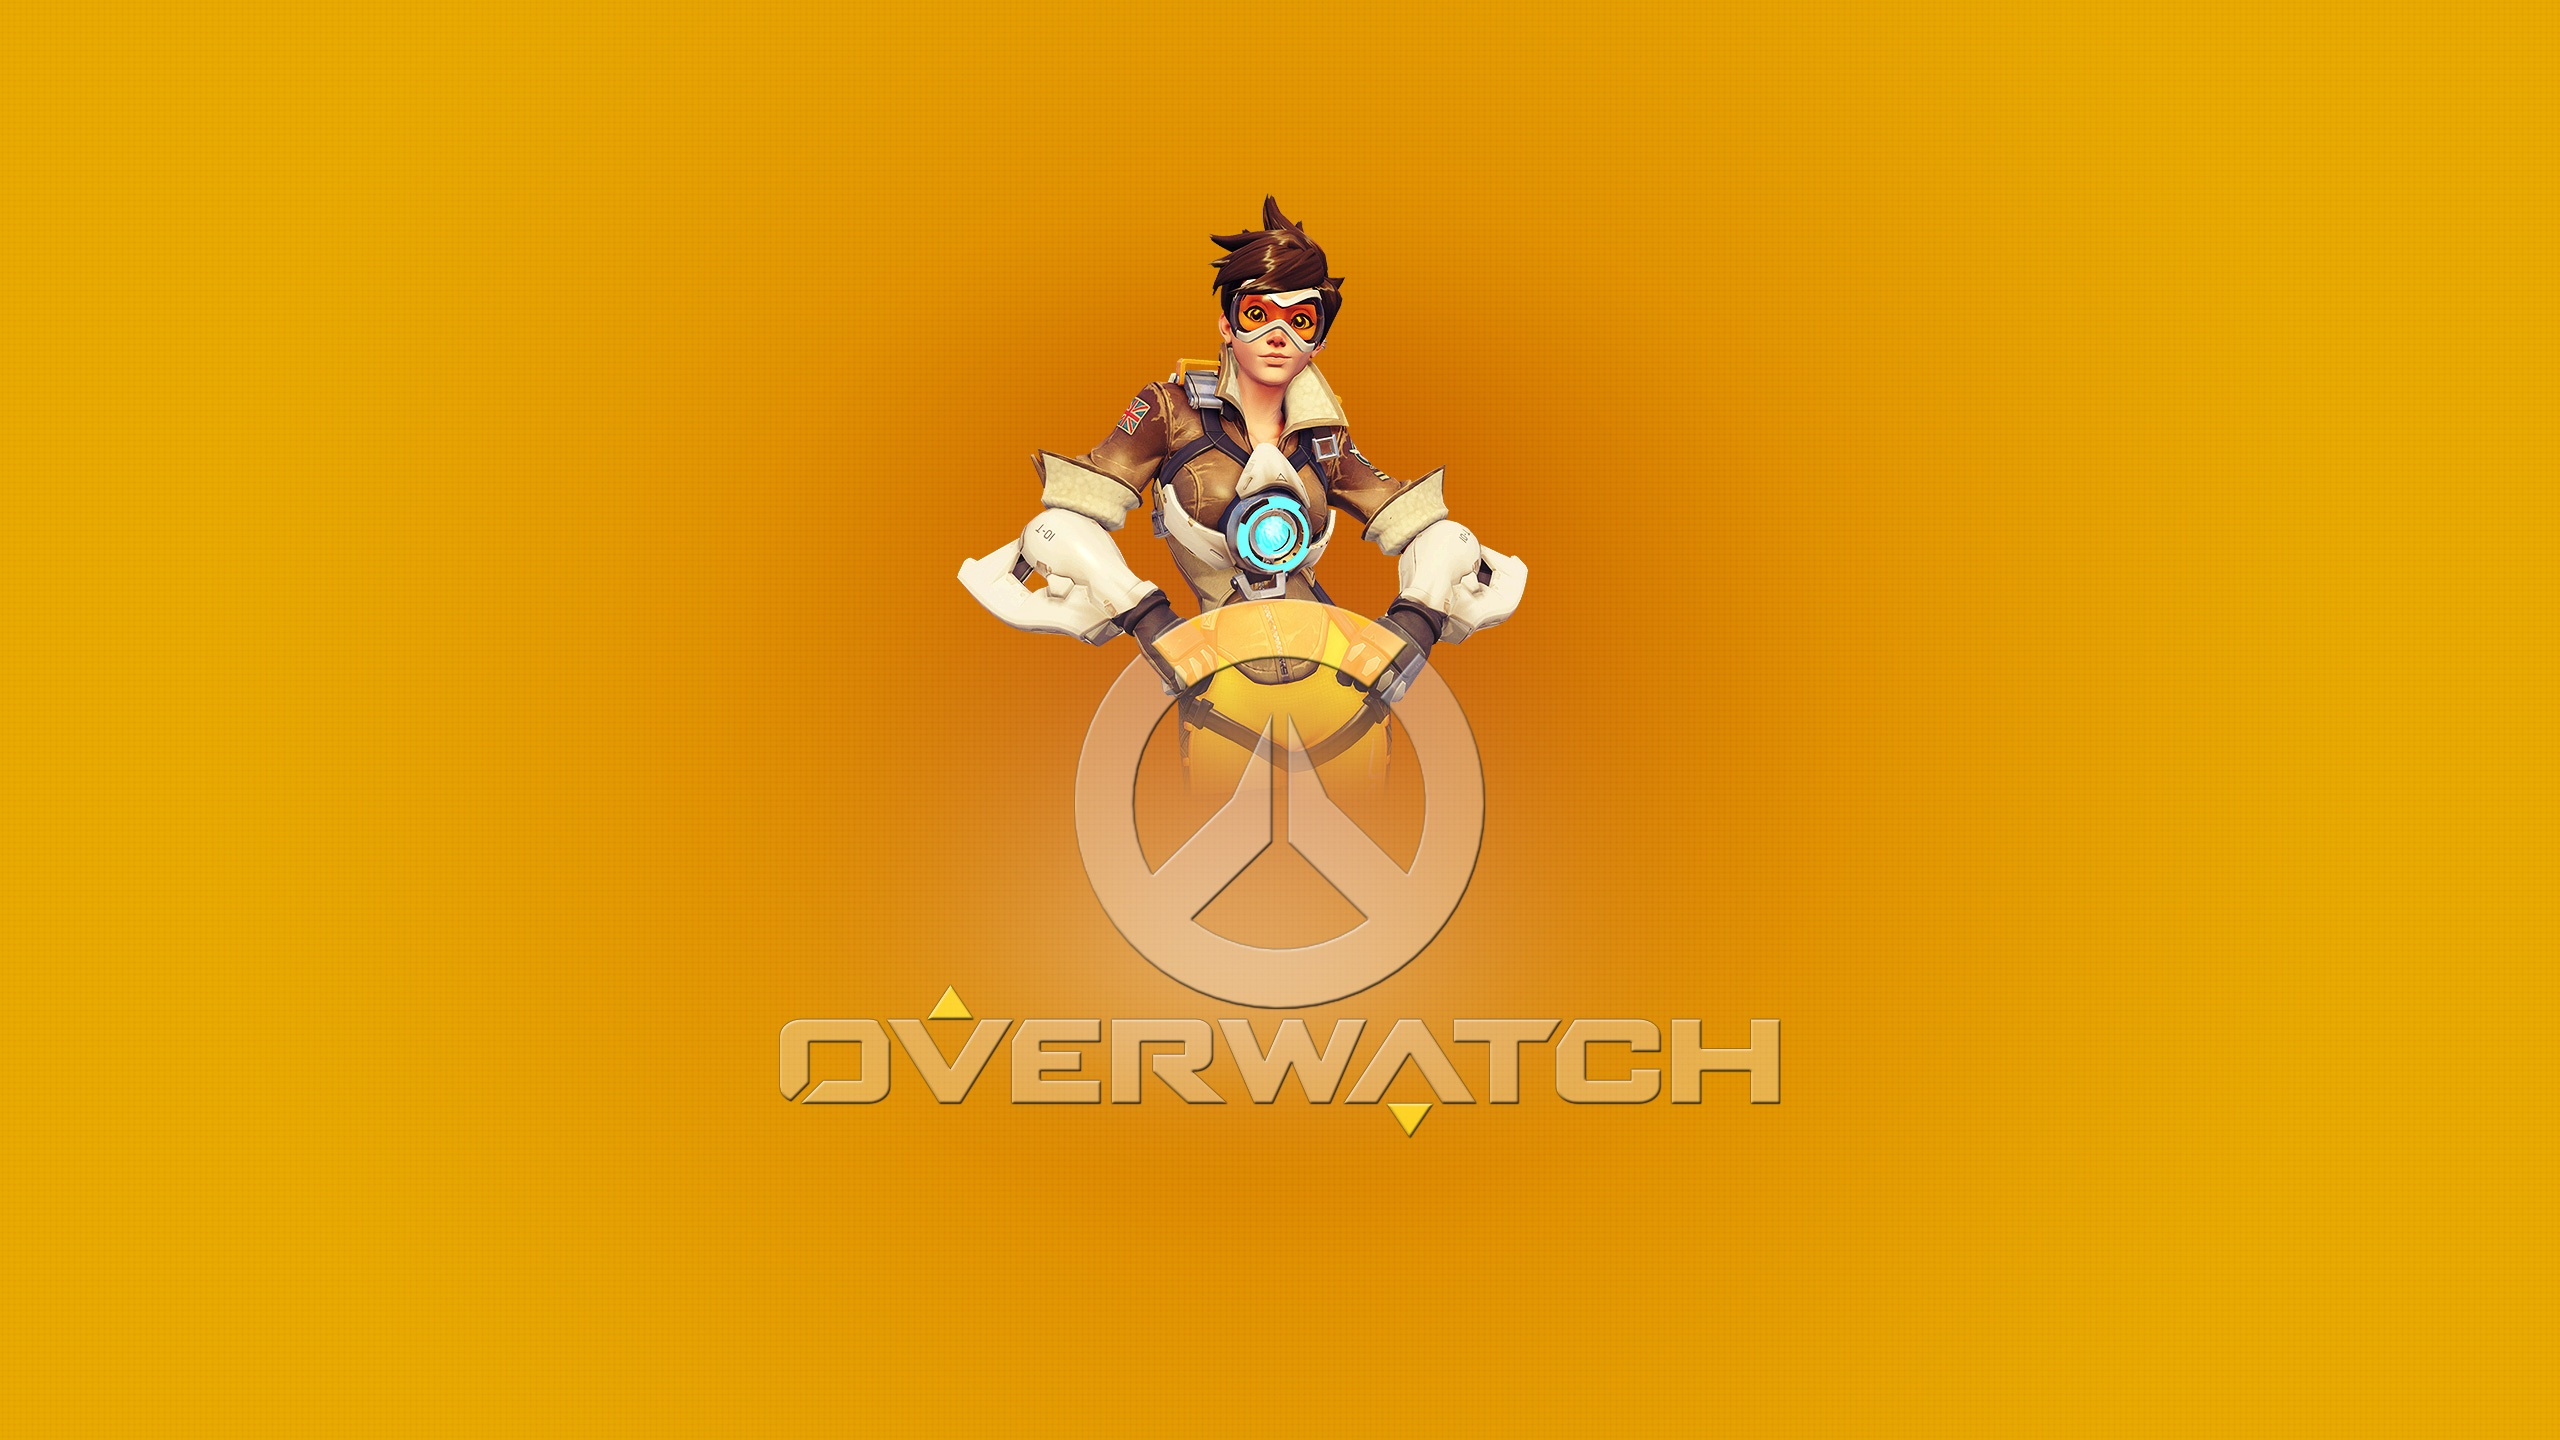 Beautiful Wallpapers For Desktop With Quotes Overwatch Wallpapers Pictures Images